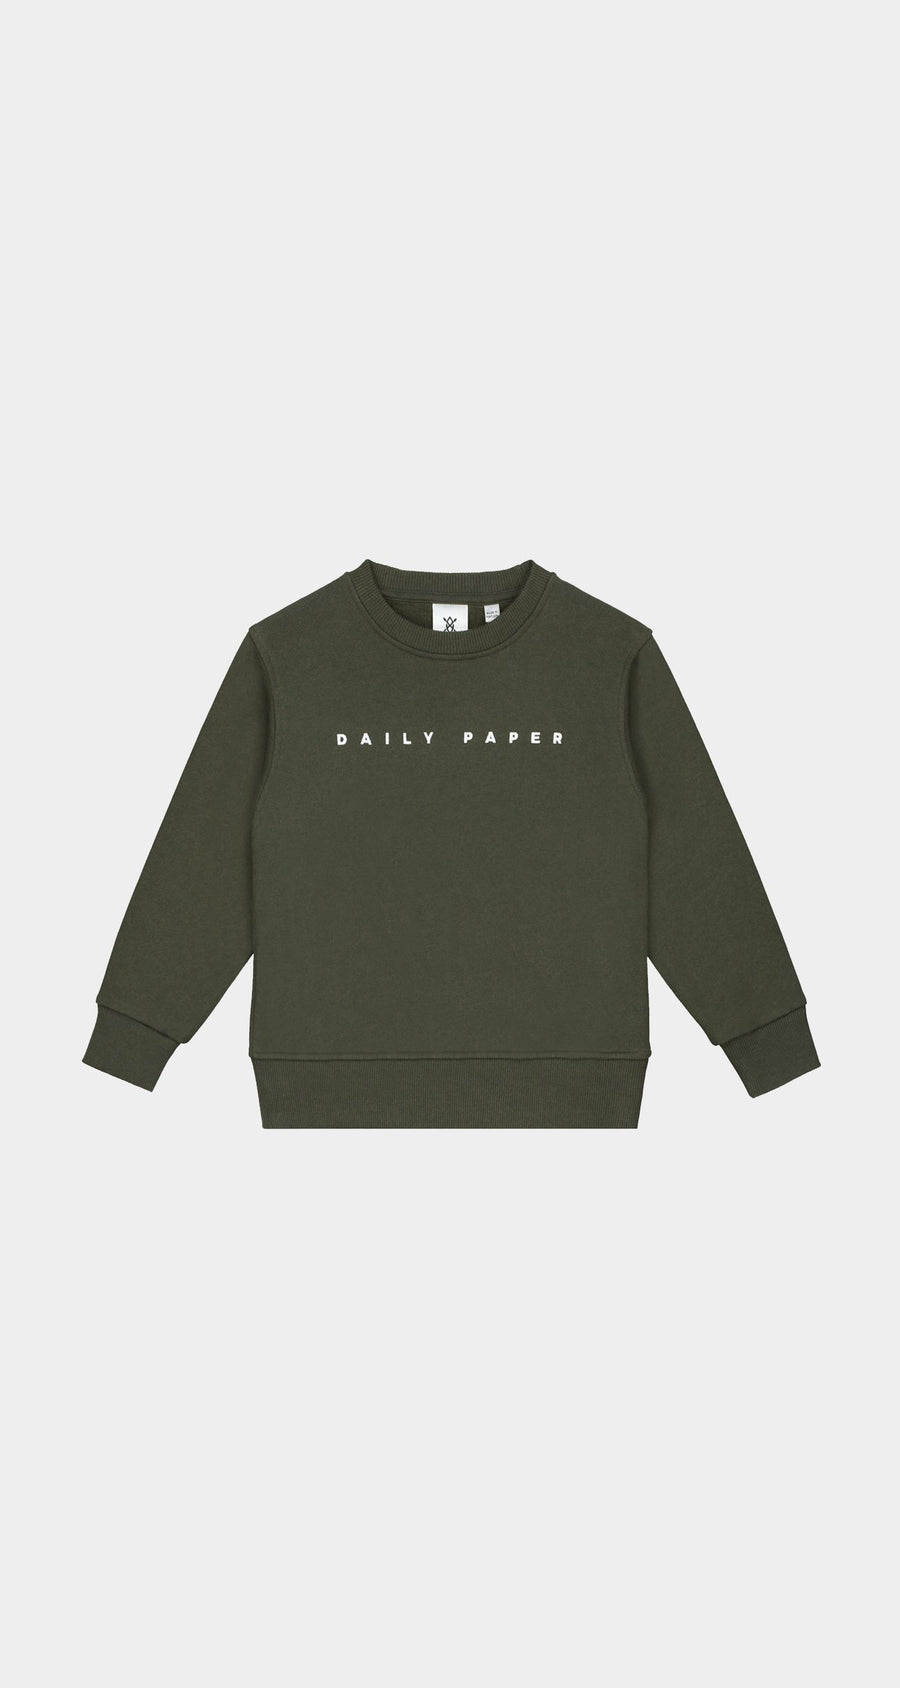 Daily Paper - Forest Green Kids Alias Sweater - Front